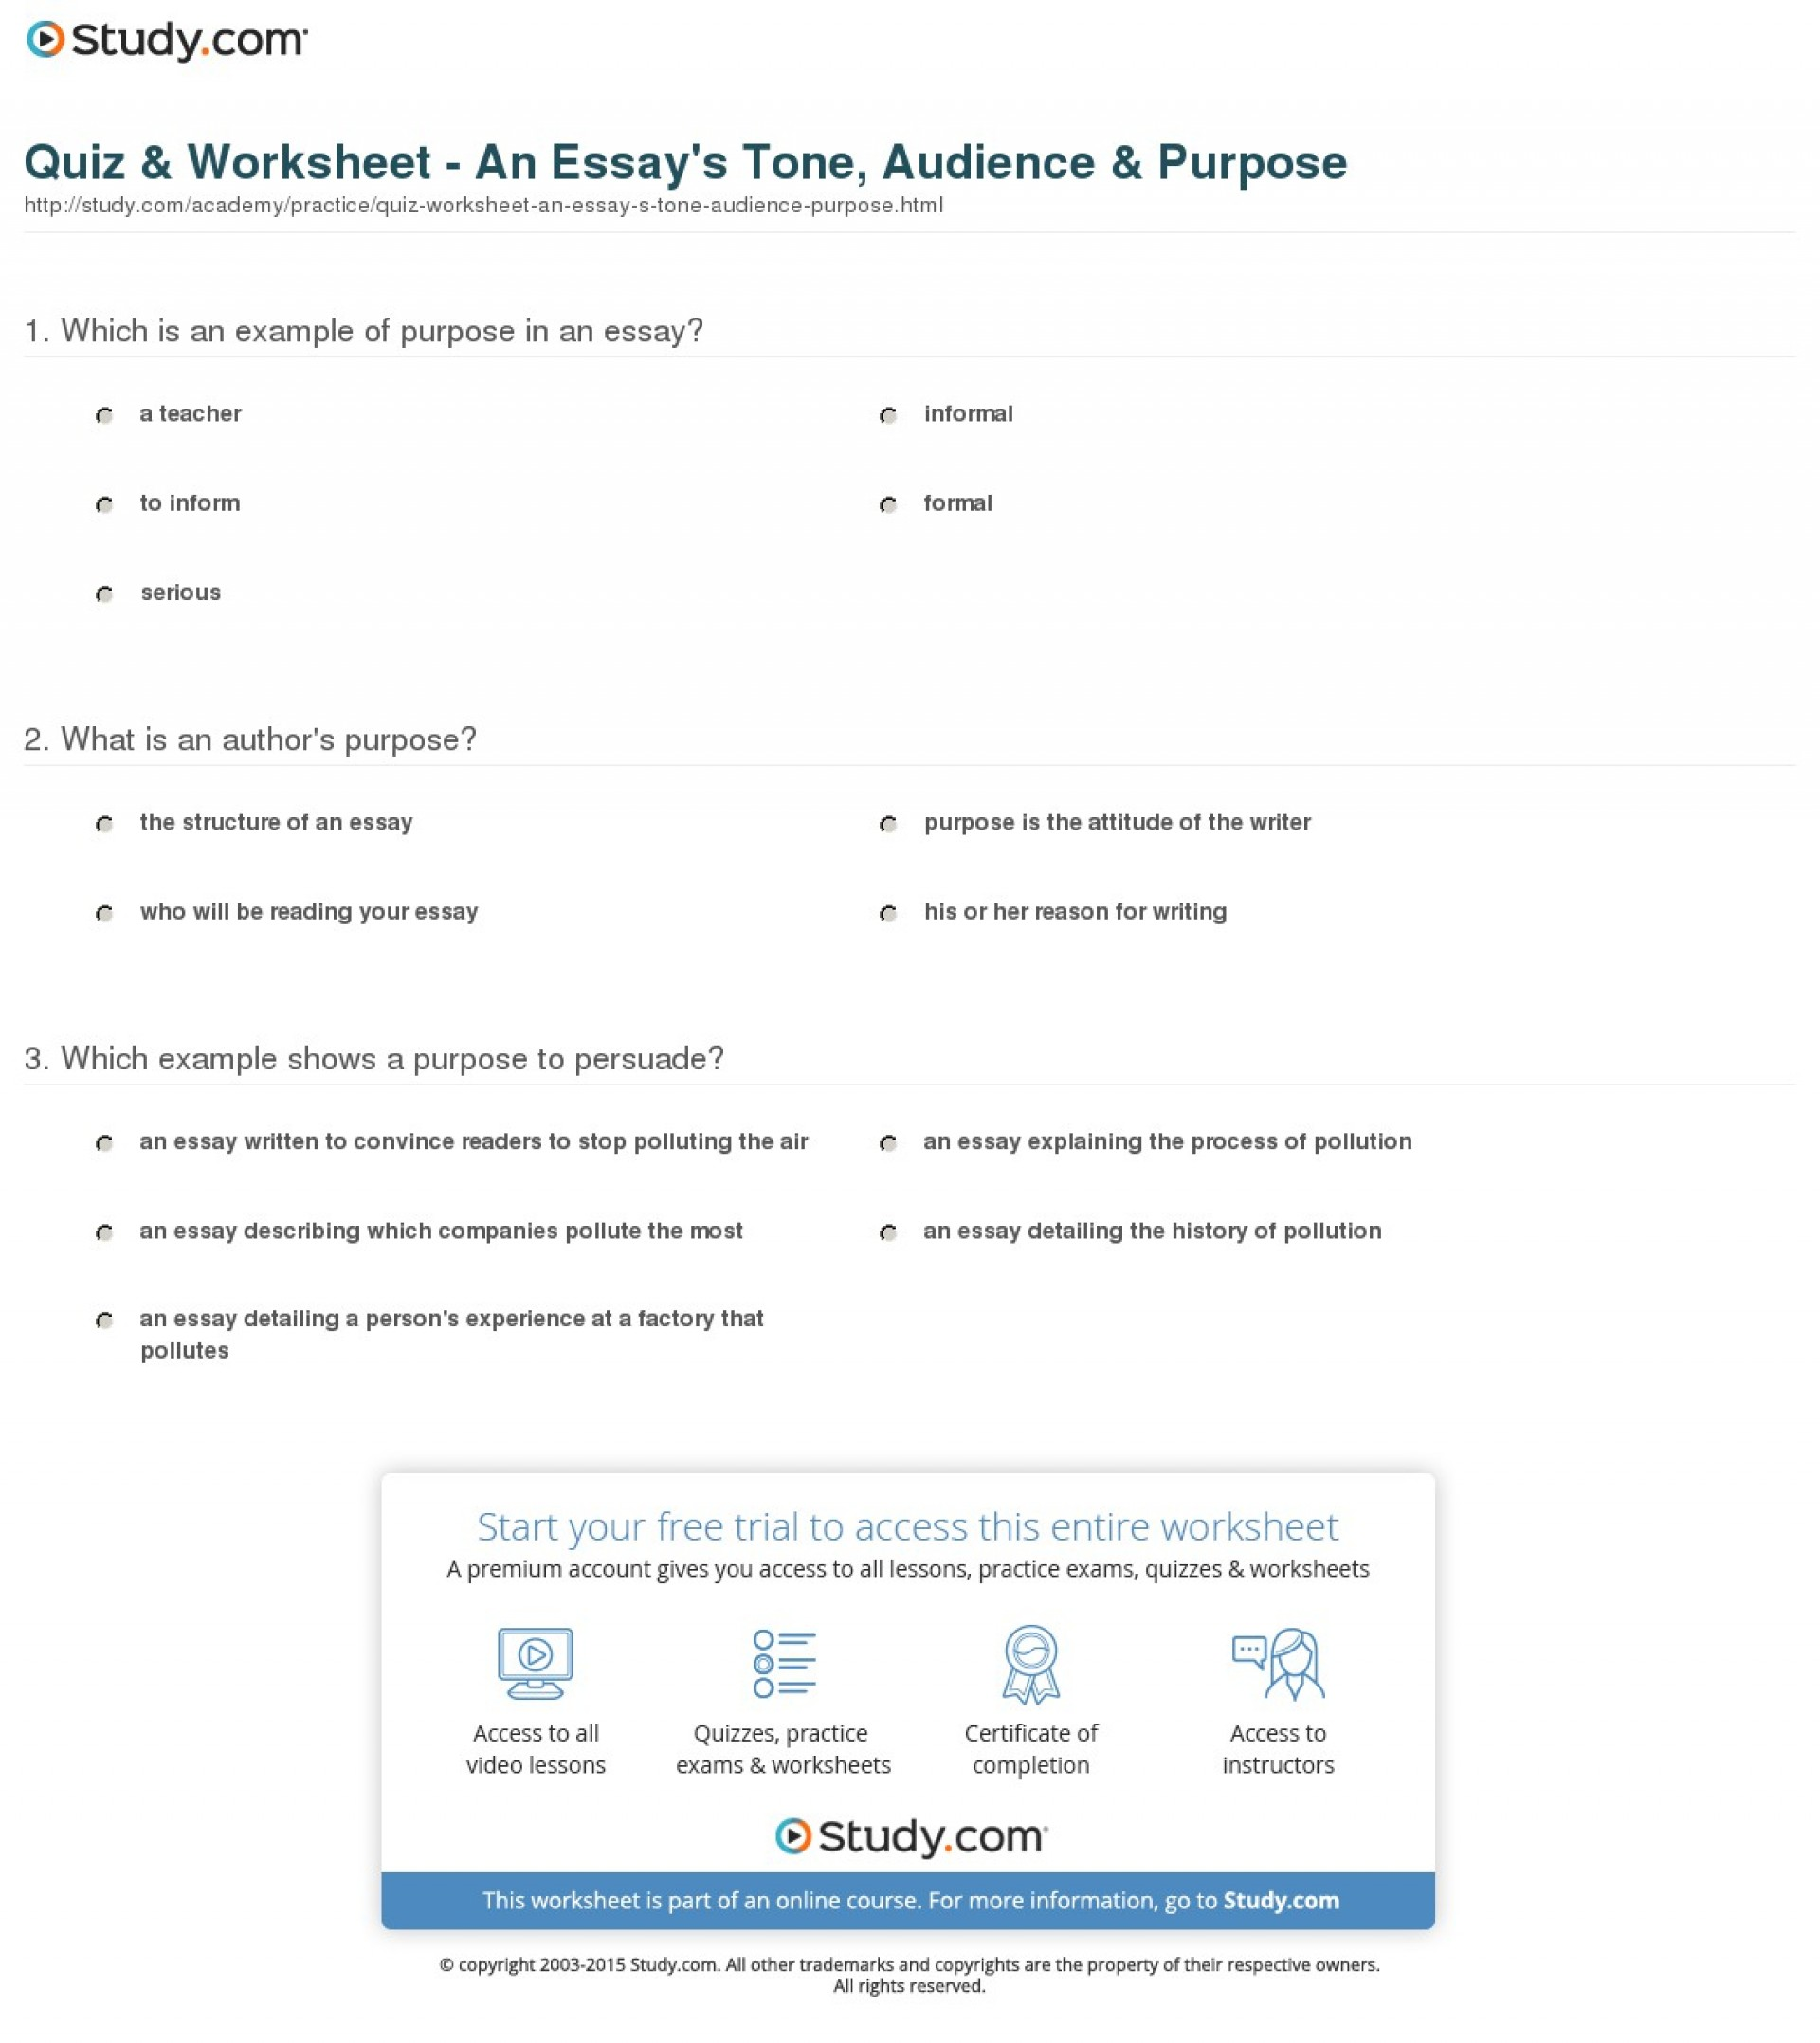 009 Quiz Worksheet An Essay S Tone Audience Purpose Example Striking Of Expository Is To Answer The Question Statement 1920